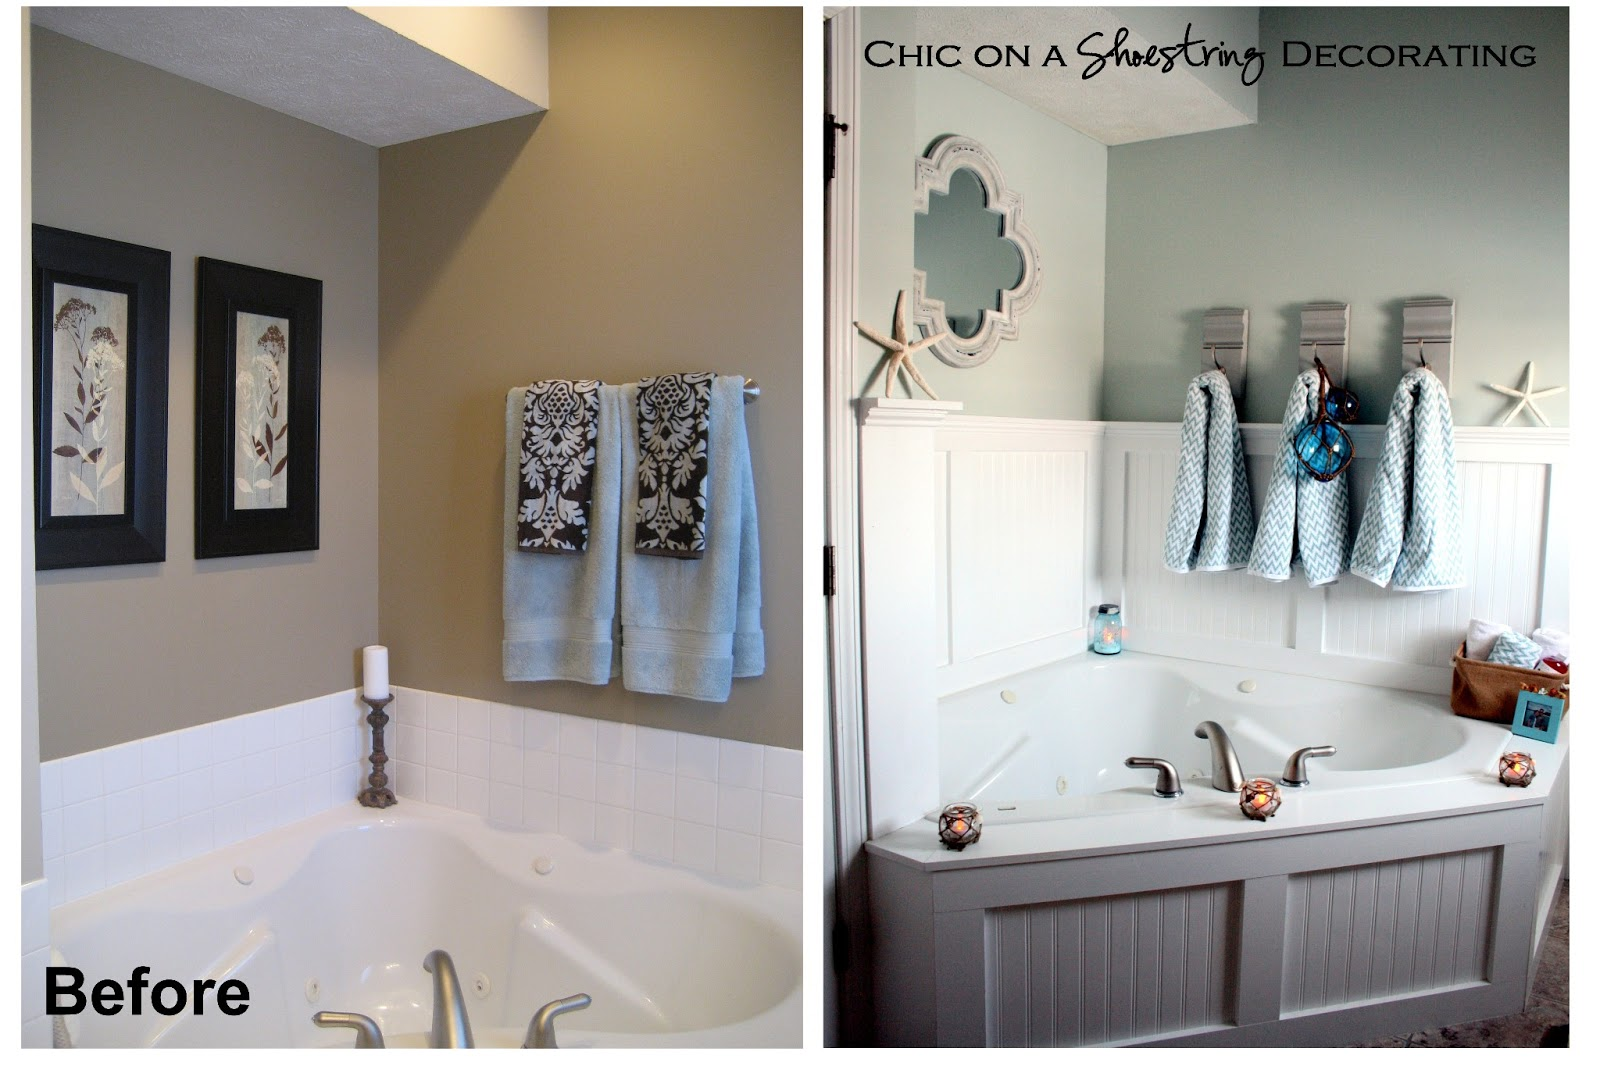 Chic On A Shoestring Decorating Beachy Bathroom Reveal - Bathroom tub makeover